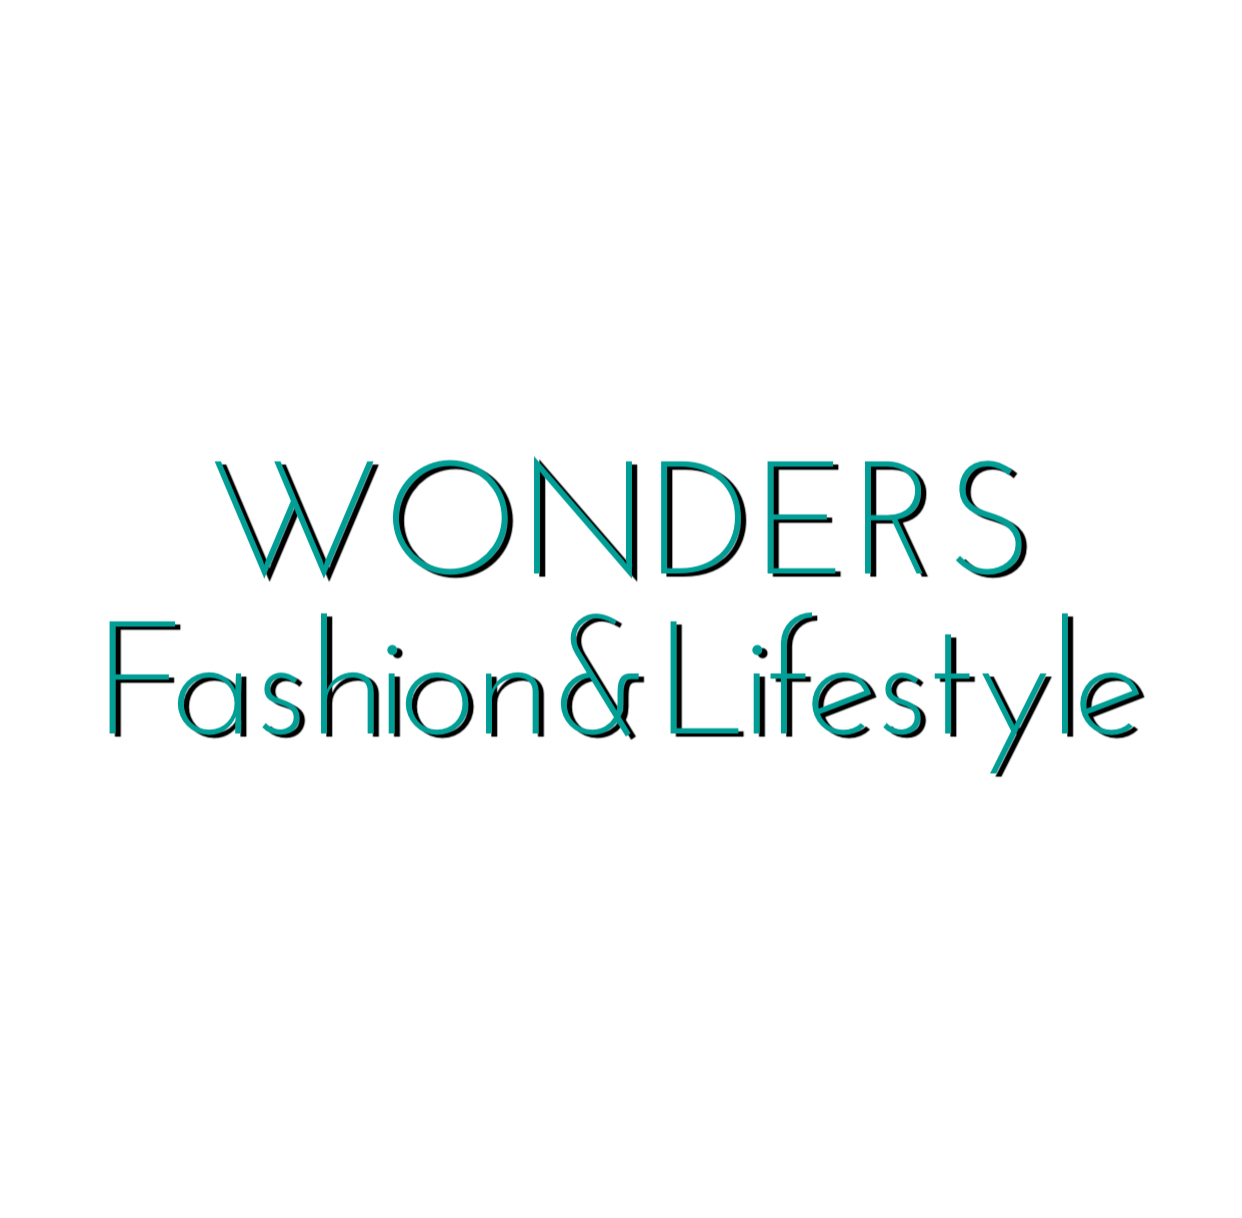 Wonders Fashion